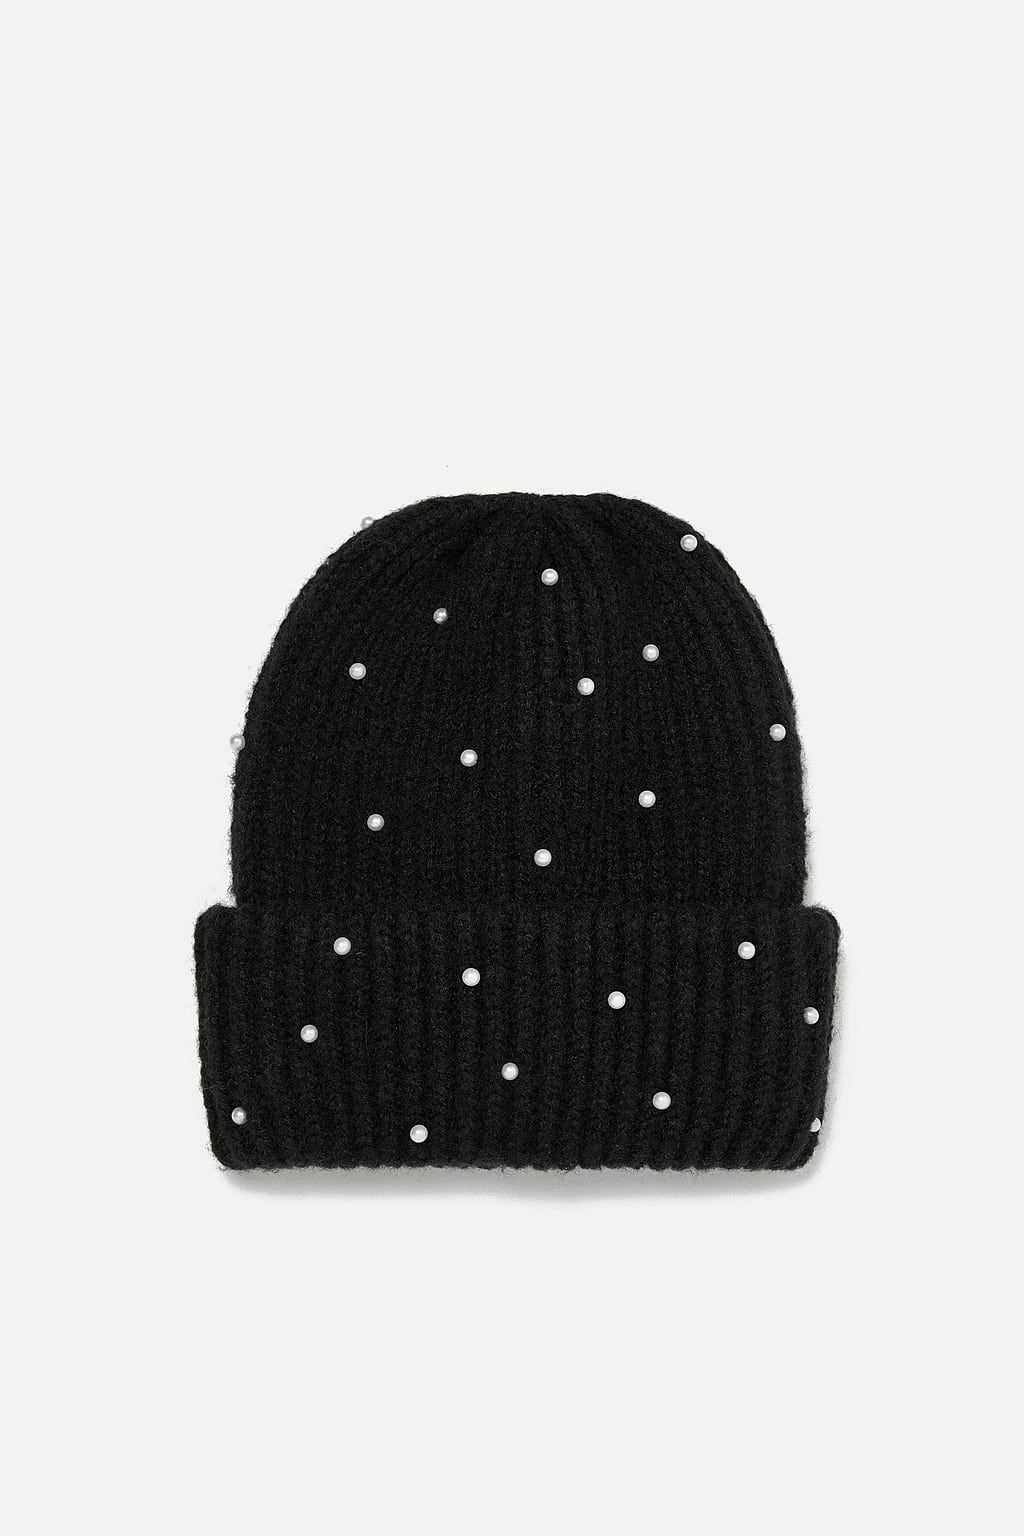 Image 1 Of Oversized Hat With Faux Pearls From Zara Wool Blend Socks Warm Winter Hats Oversized Hat